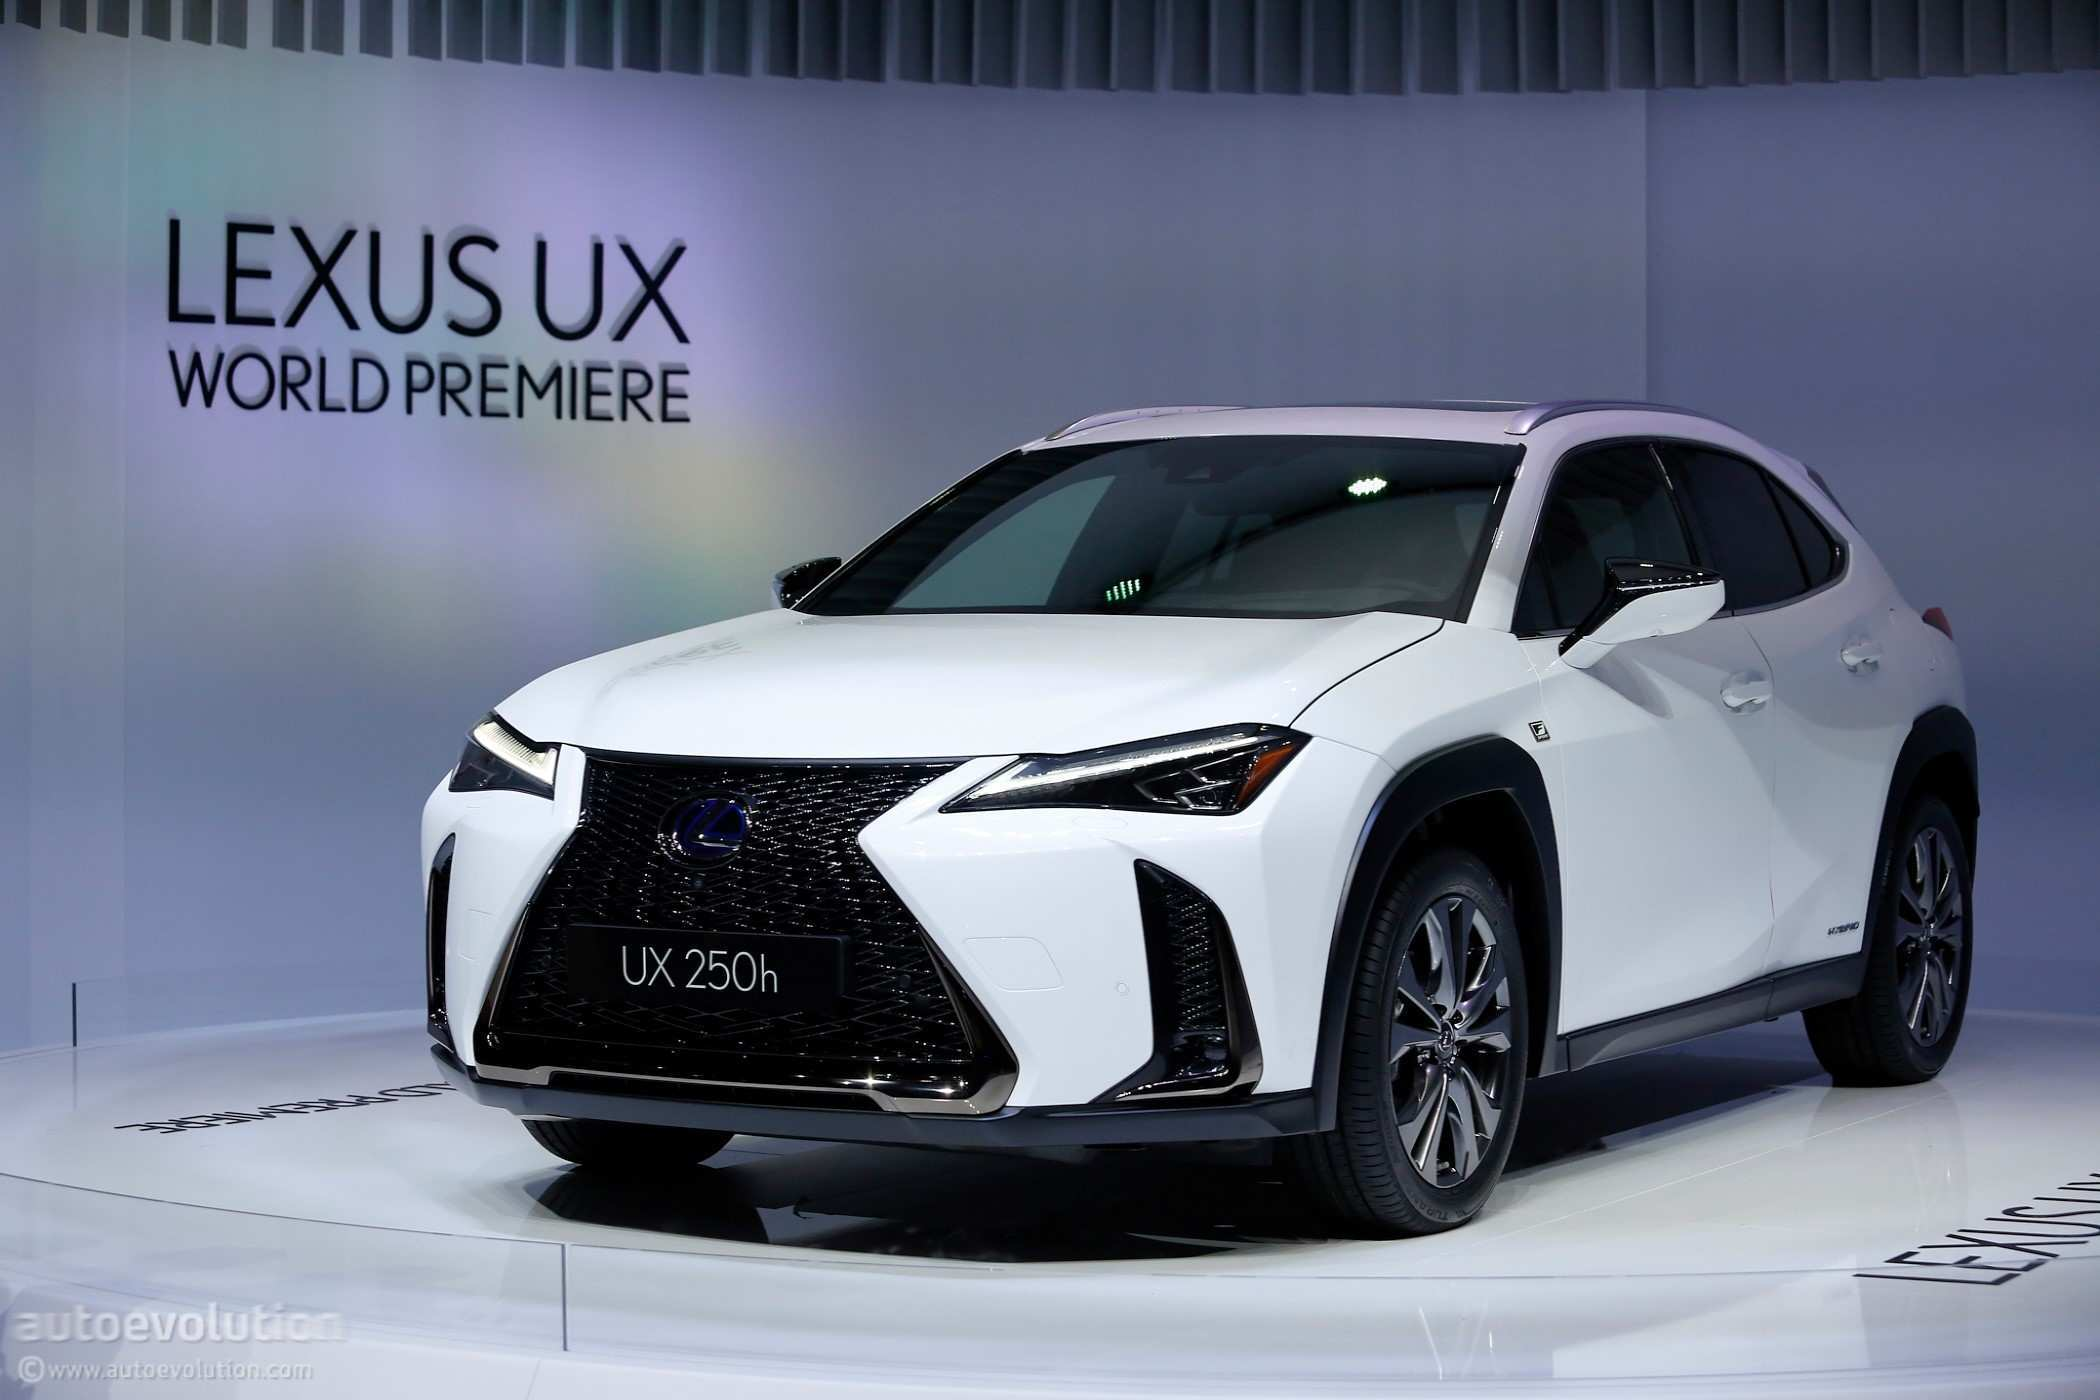 78 Great Lexus Hatchback 2020 New Review with Lexus Hatchback 2020